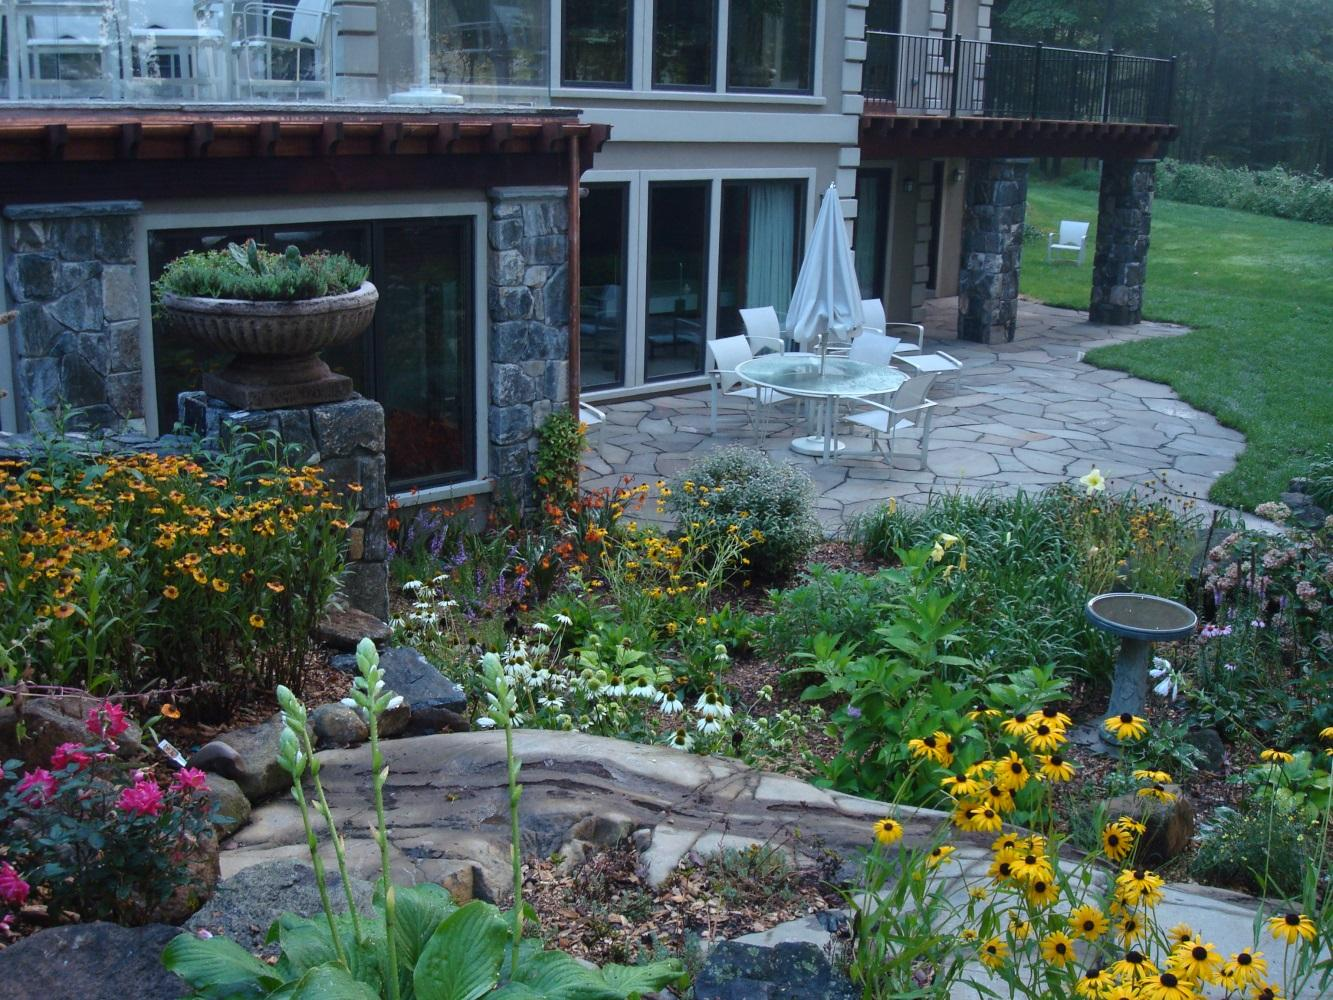 Creating an inviting seating area, planting season to season perennial beds and making natural stone and stone shapes focal point, this back patio received a warm welcome into family's favorite hang-o